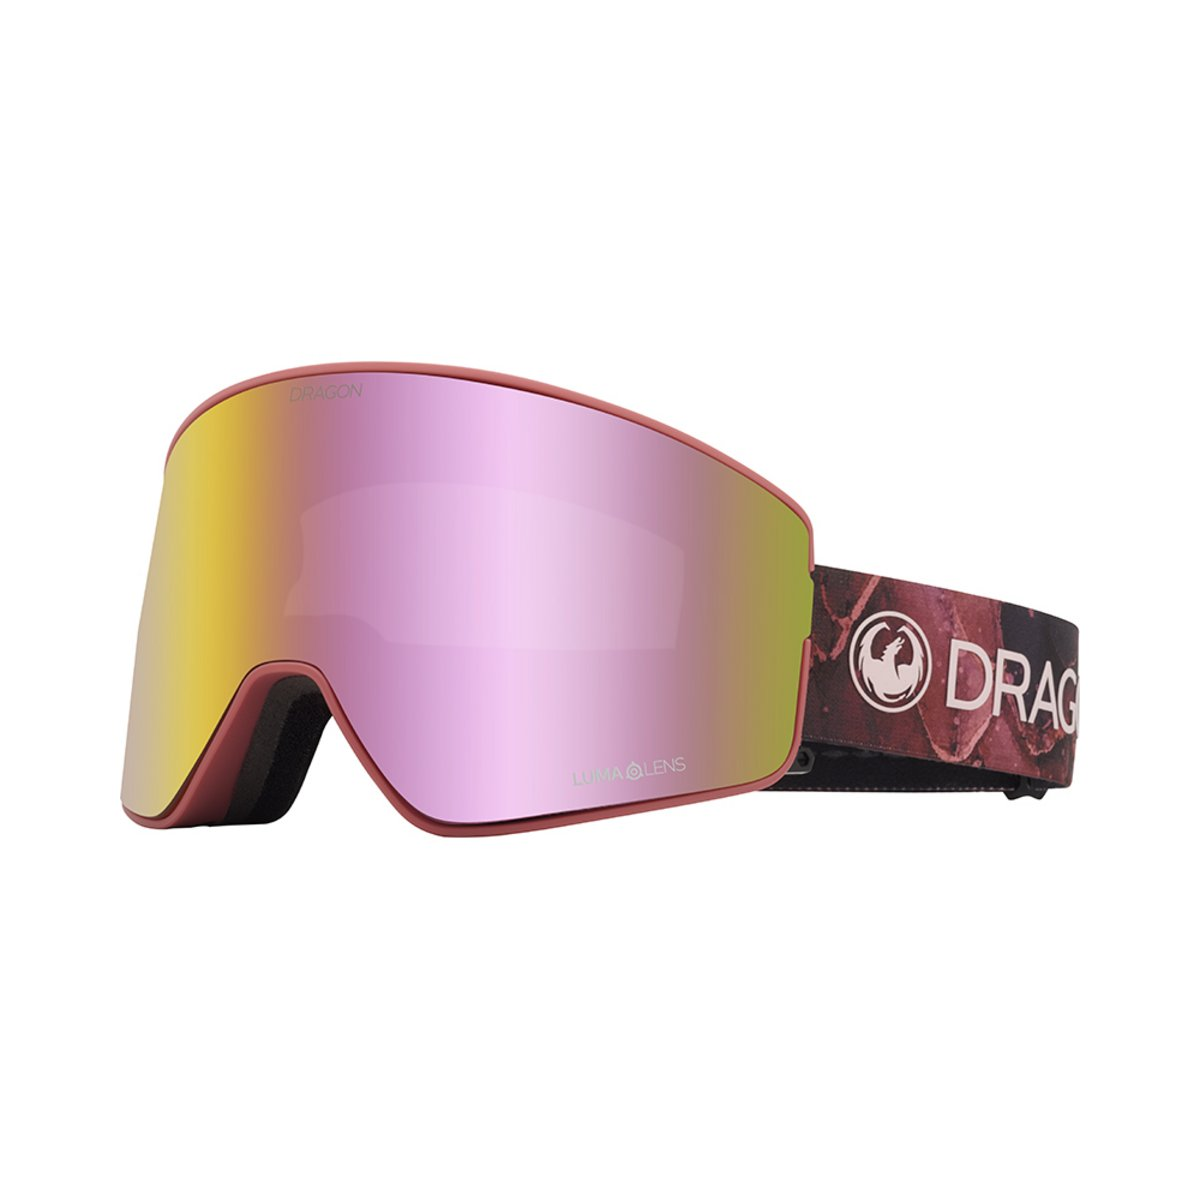 Dragon Women's PXV2 Rose / Lumalens Pink Ionized + Lumalens Dark Smoke Goggles 2019 / 2020 0